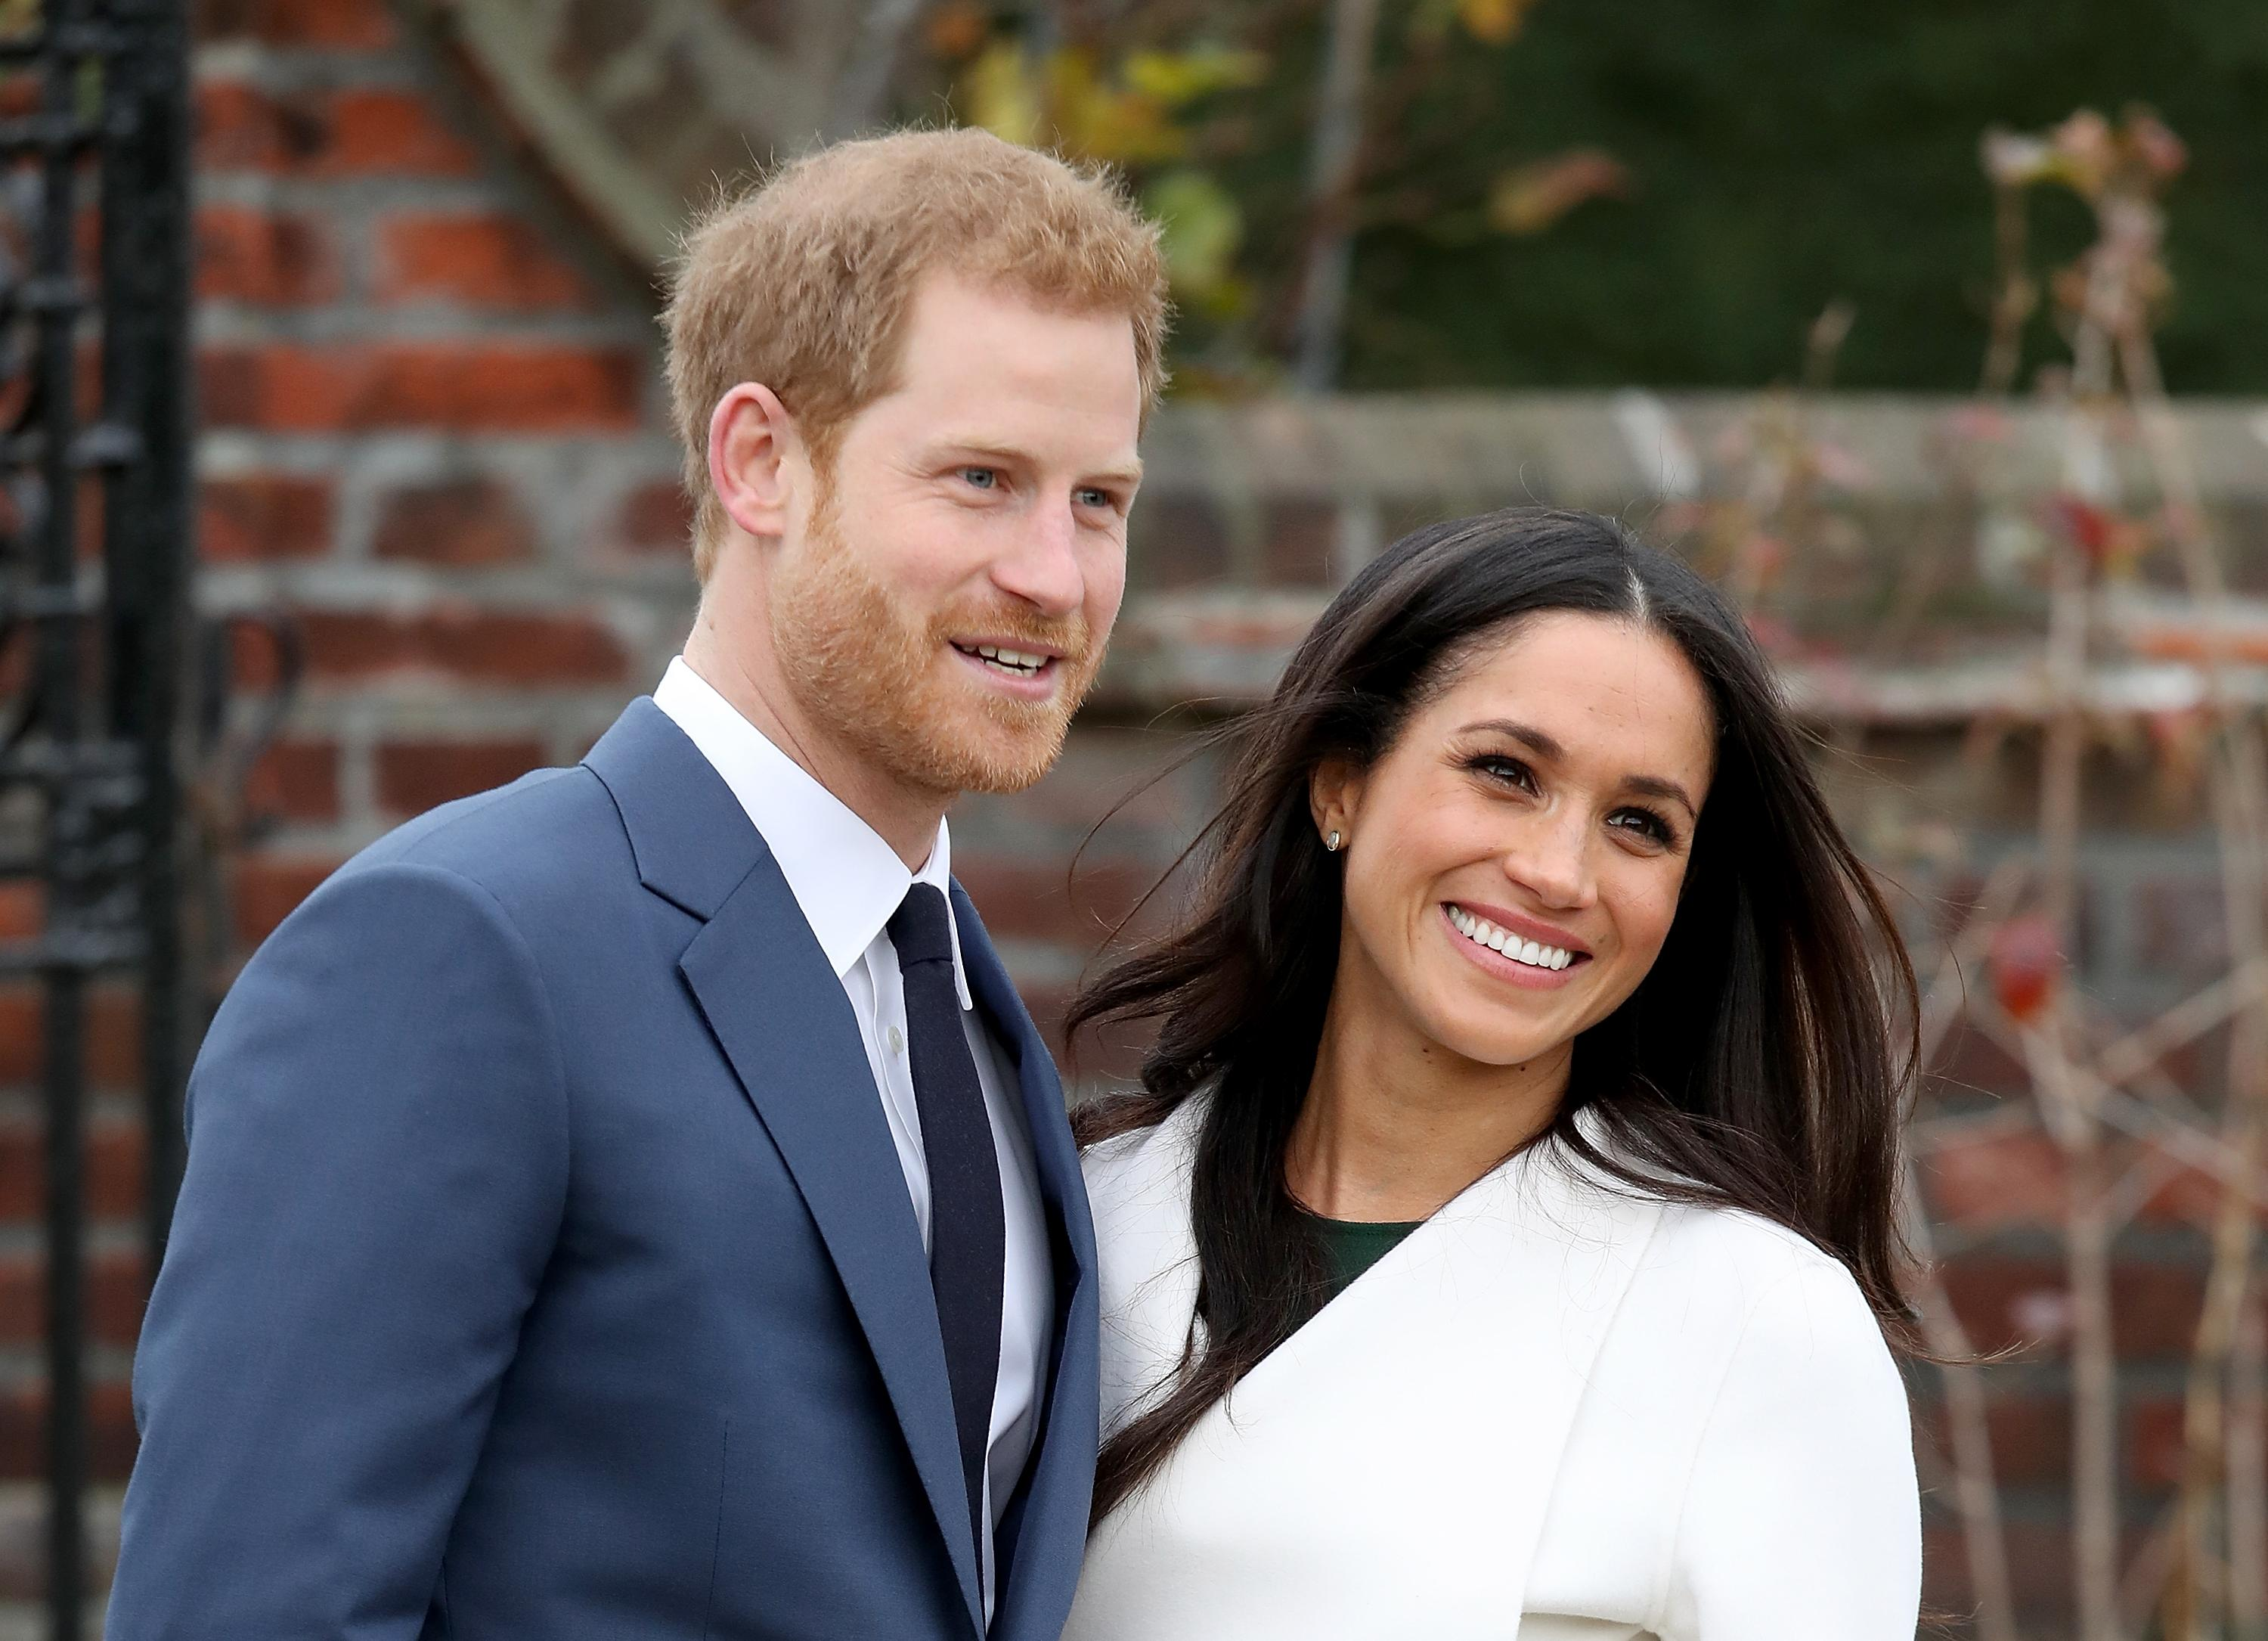 Prince Harry, Meghan Markle to marry on May 19: palace